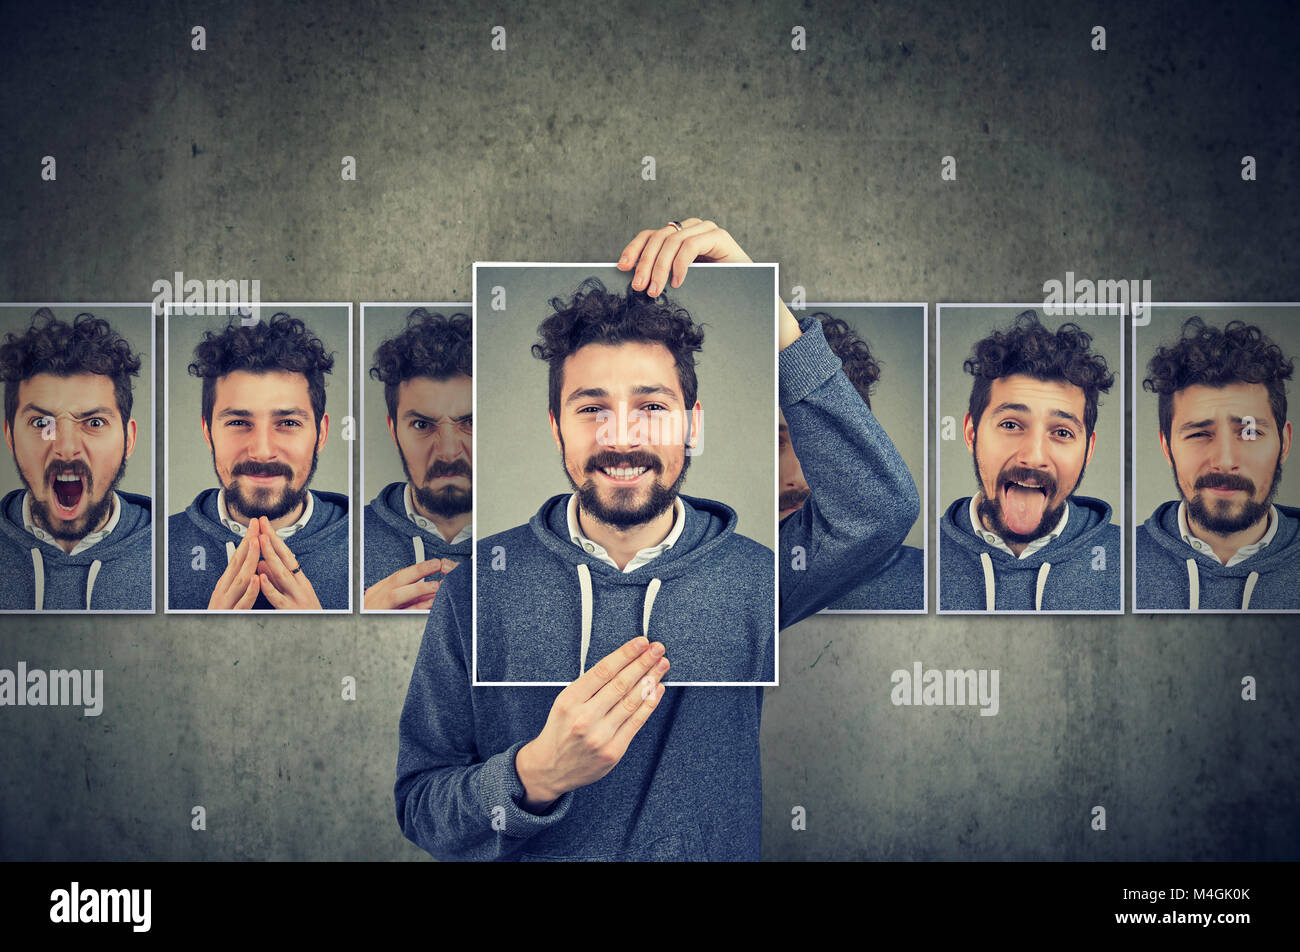 Positive masked young man in glasses expressing different emotions - Stock Image